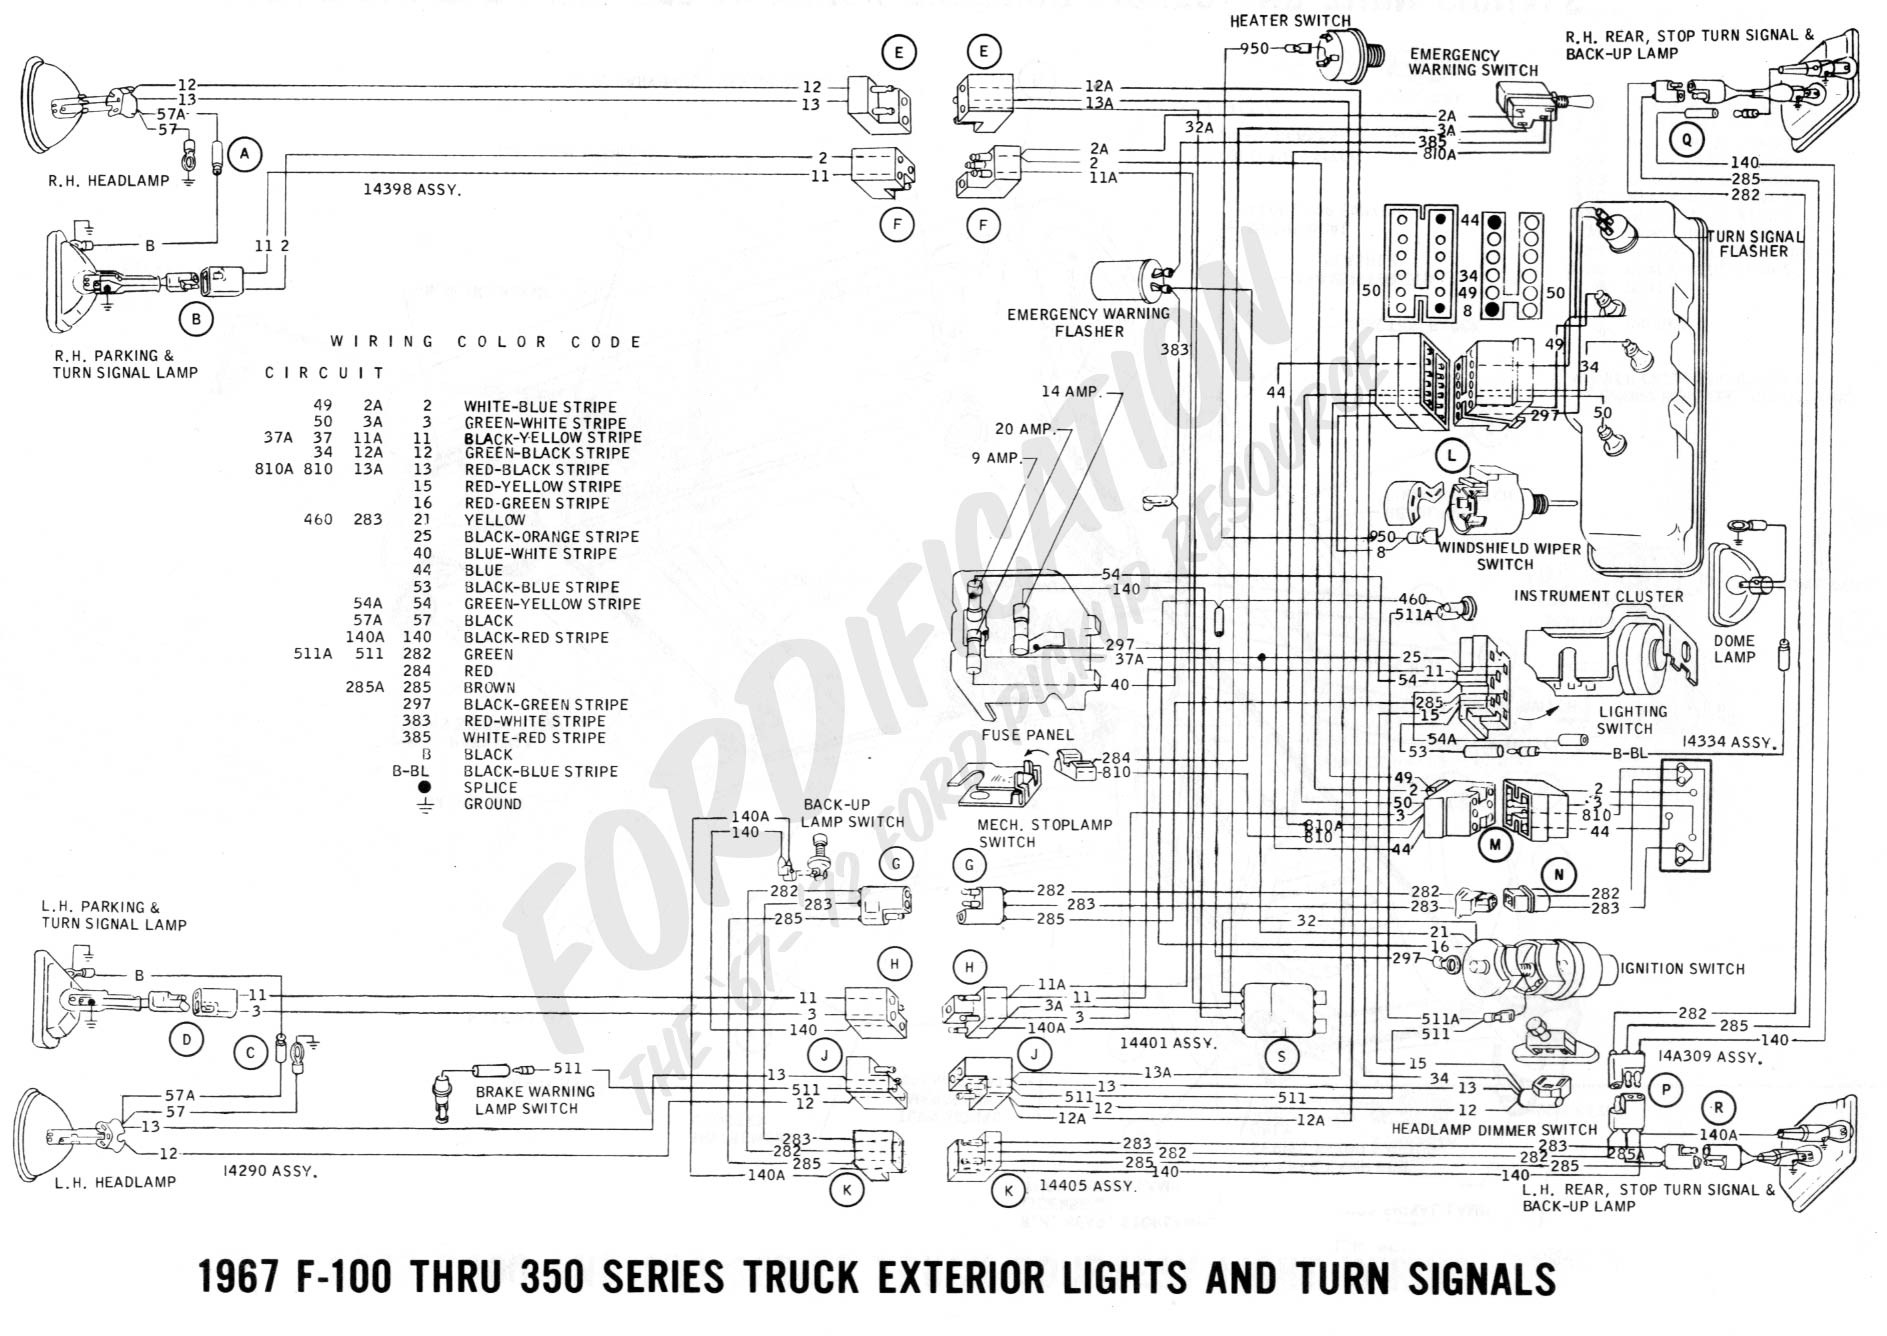 Universal Turn Signal Switch Wiring Diagram Vintage Hot